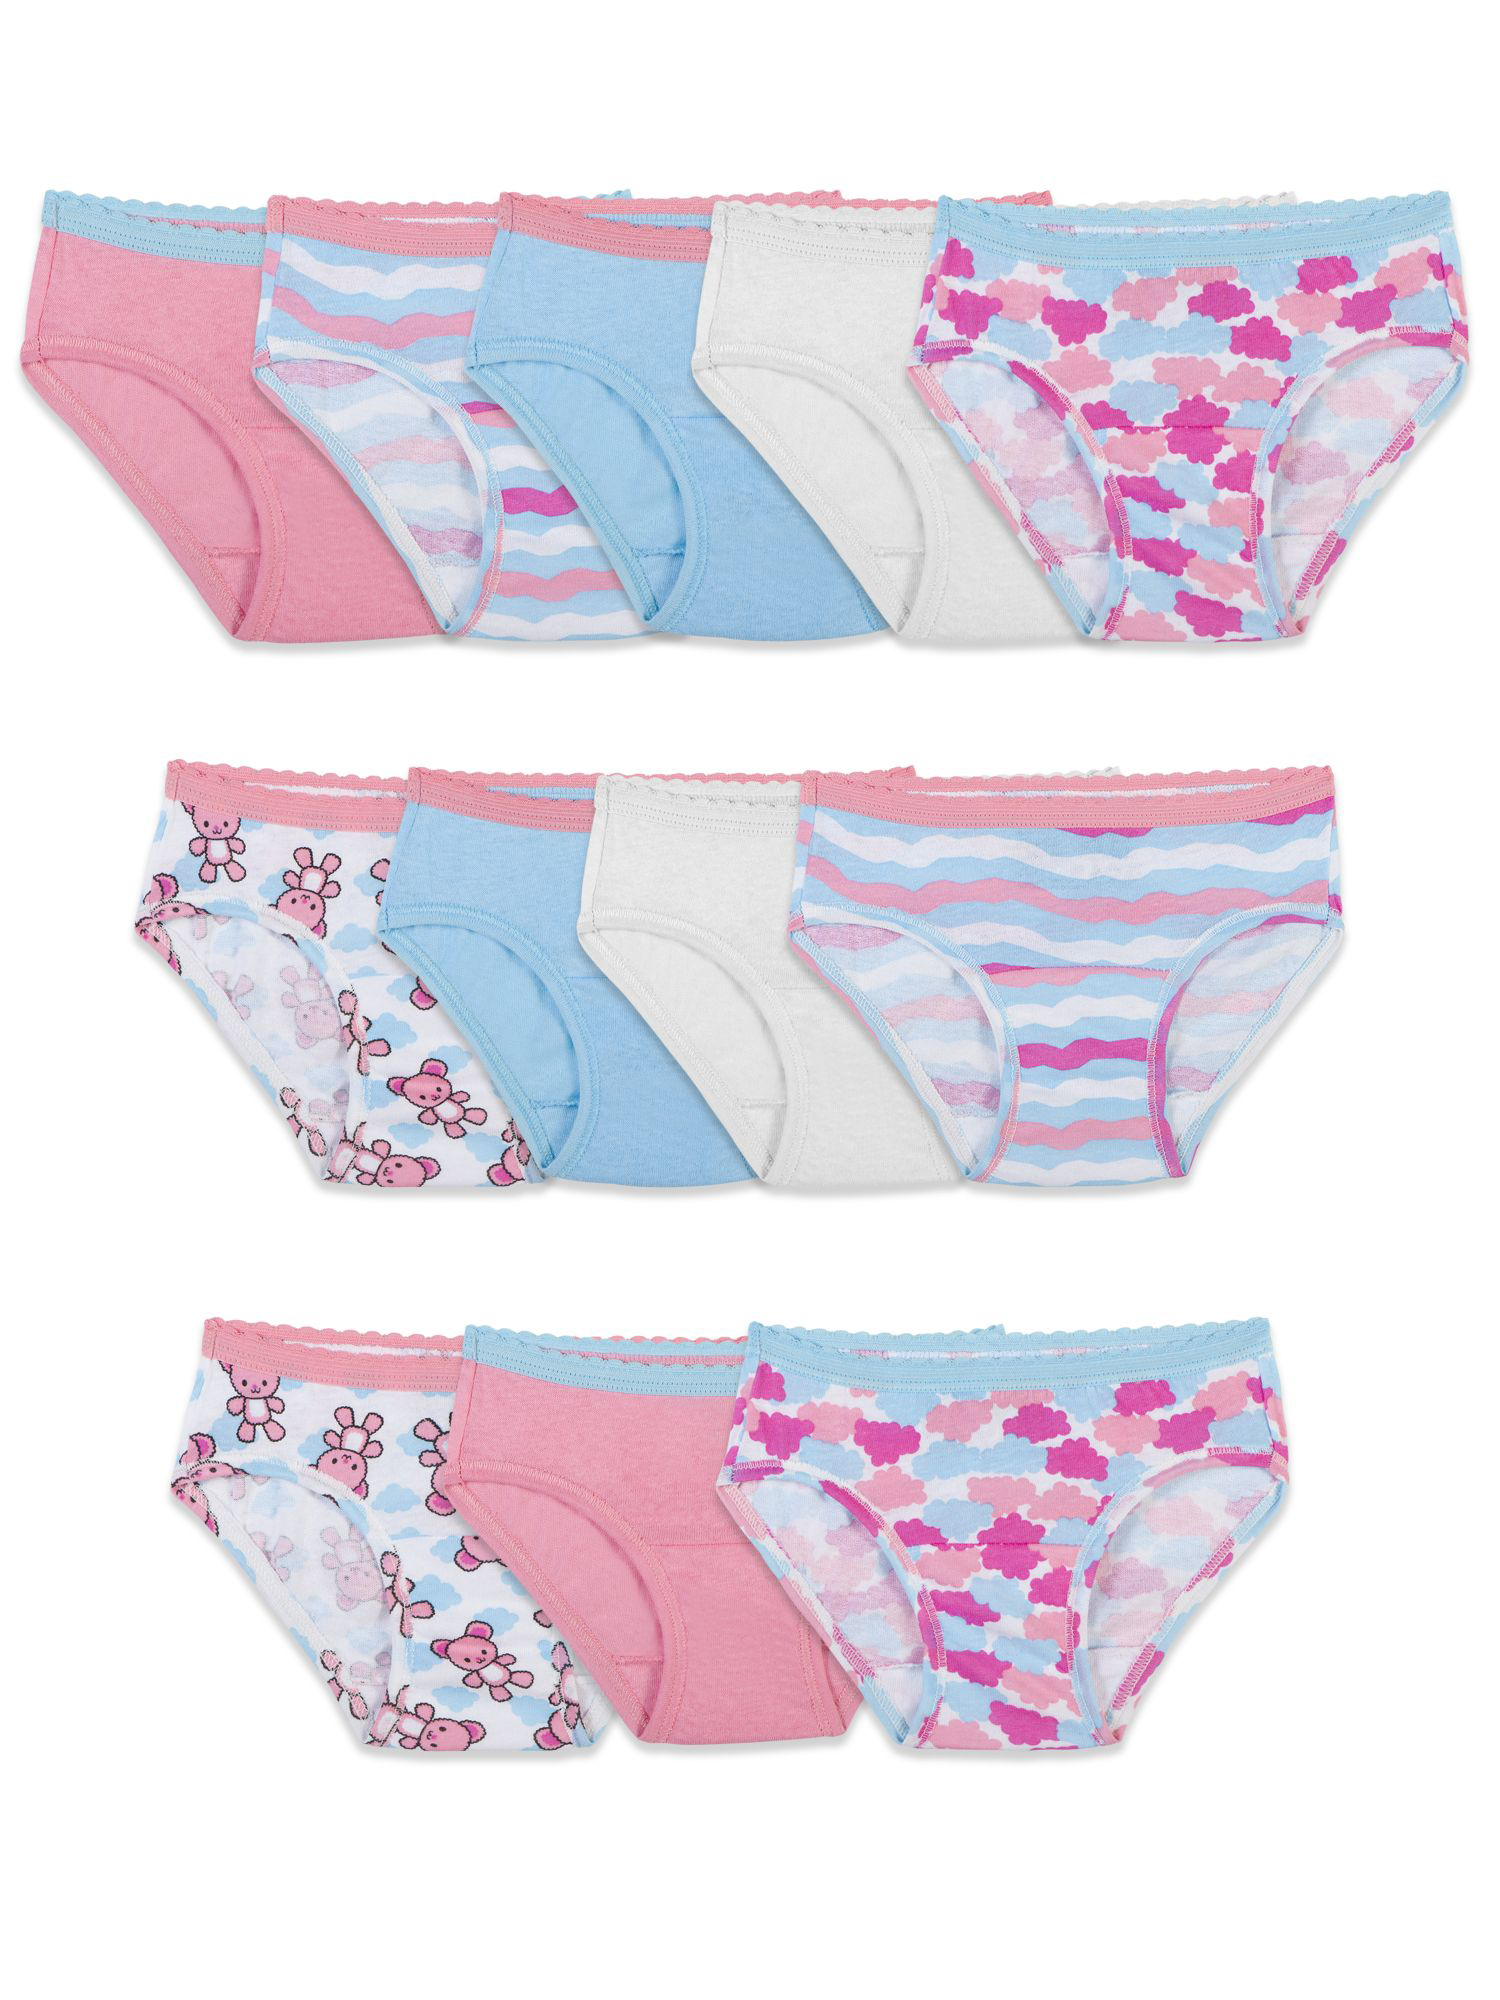 Assorted Color Cotton Hipsters, 12 Pack (Toddler Girls)